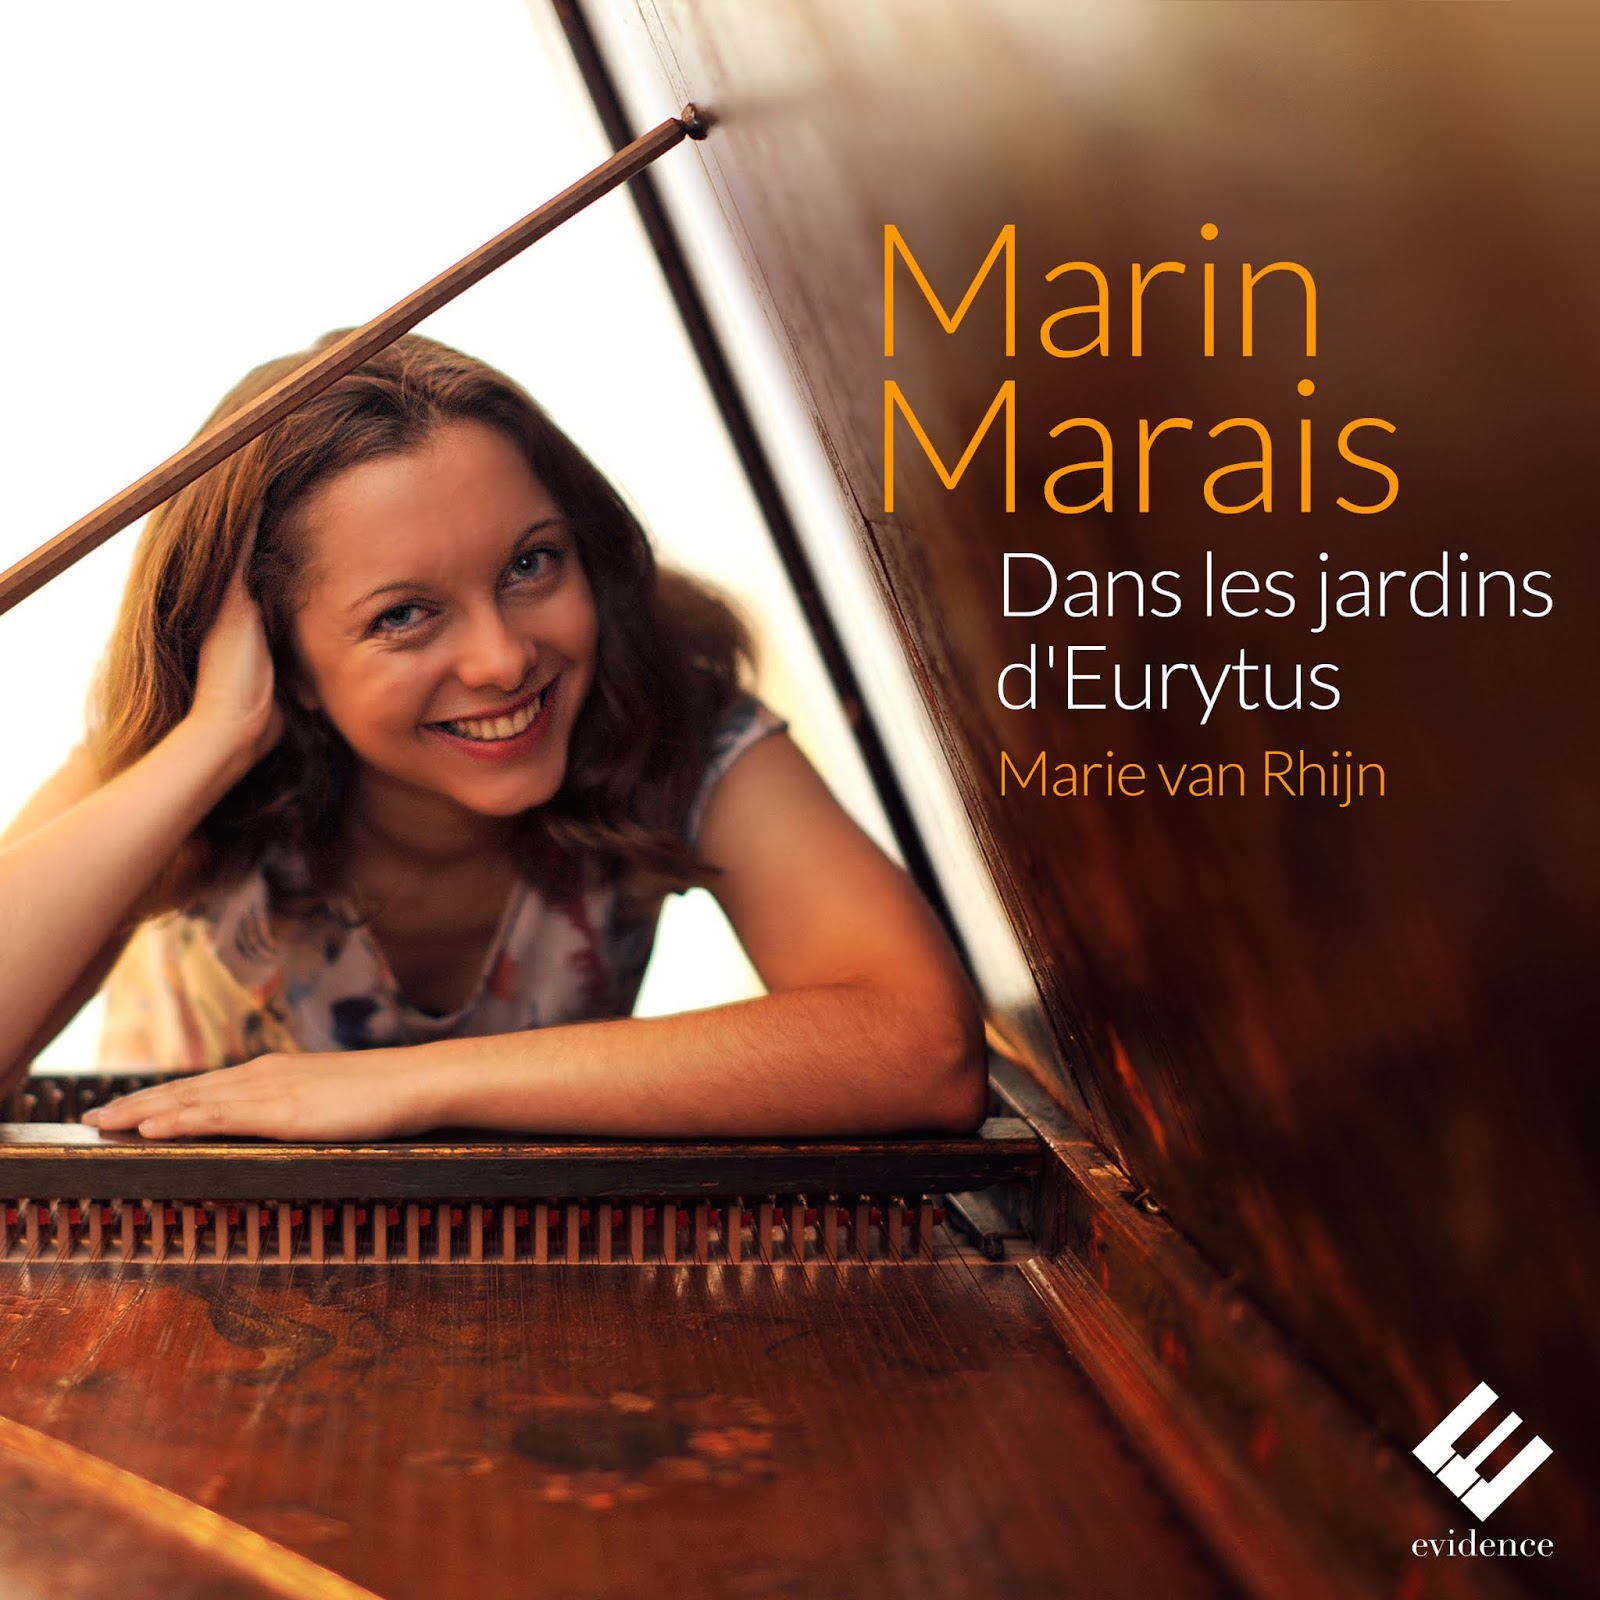 FOUR SONGS ABOUT MARY chorale Choeur et ensemble vocal BOTE AND BOCK MARTINU BOHUSLAV MIXED CHOIR Partition classique Vocale